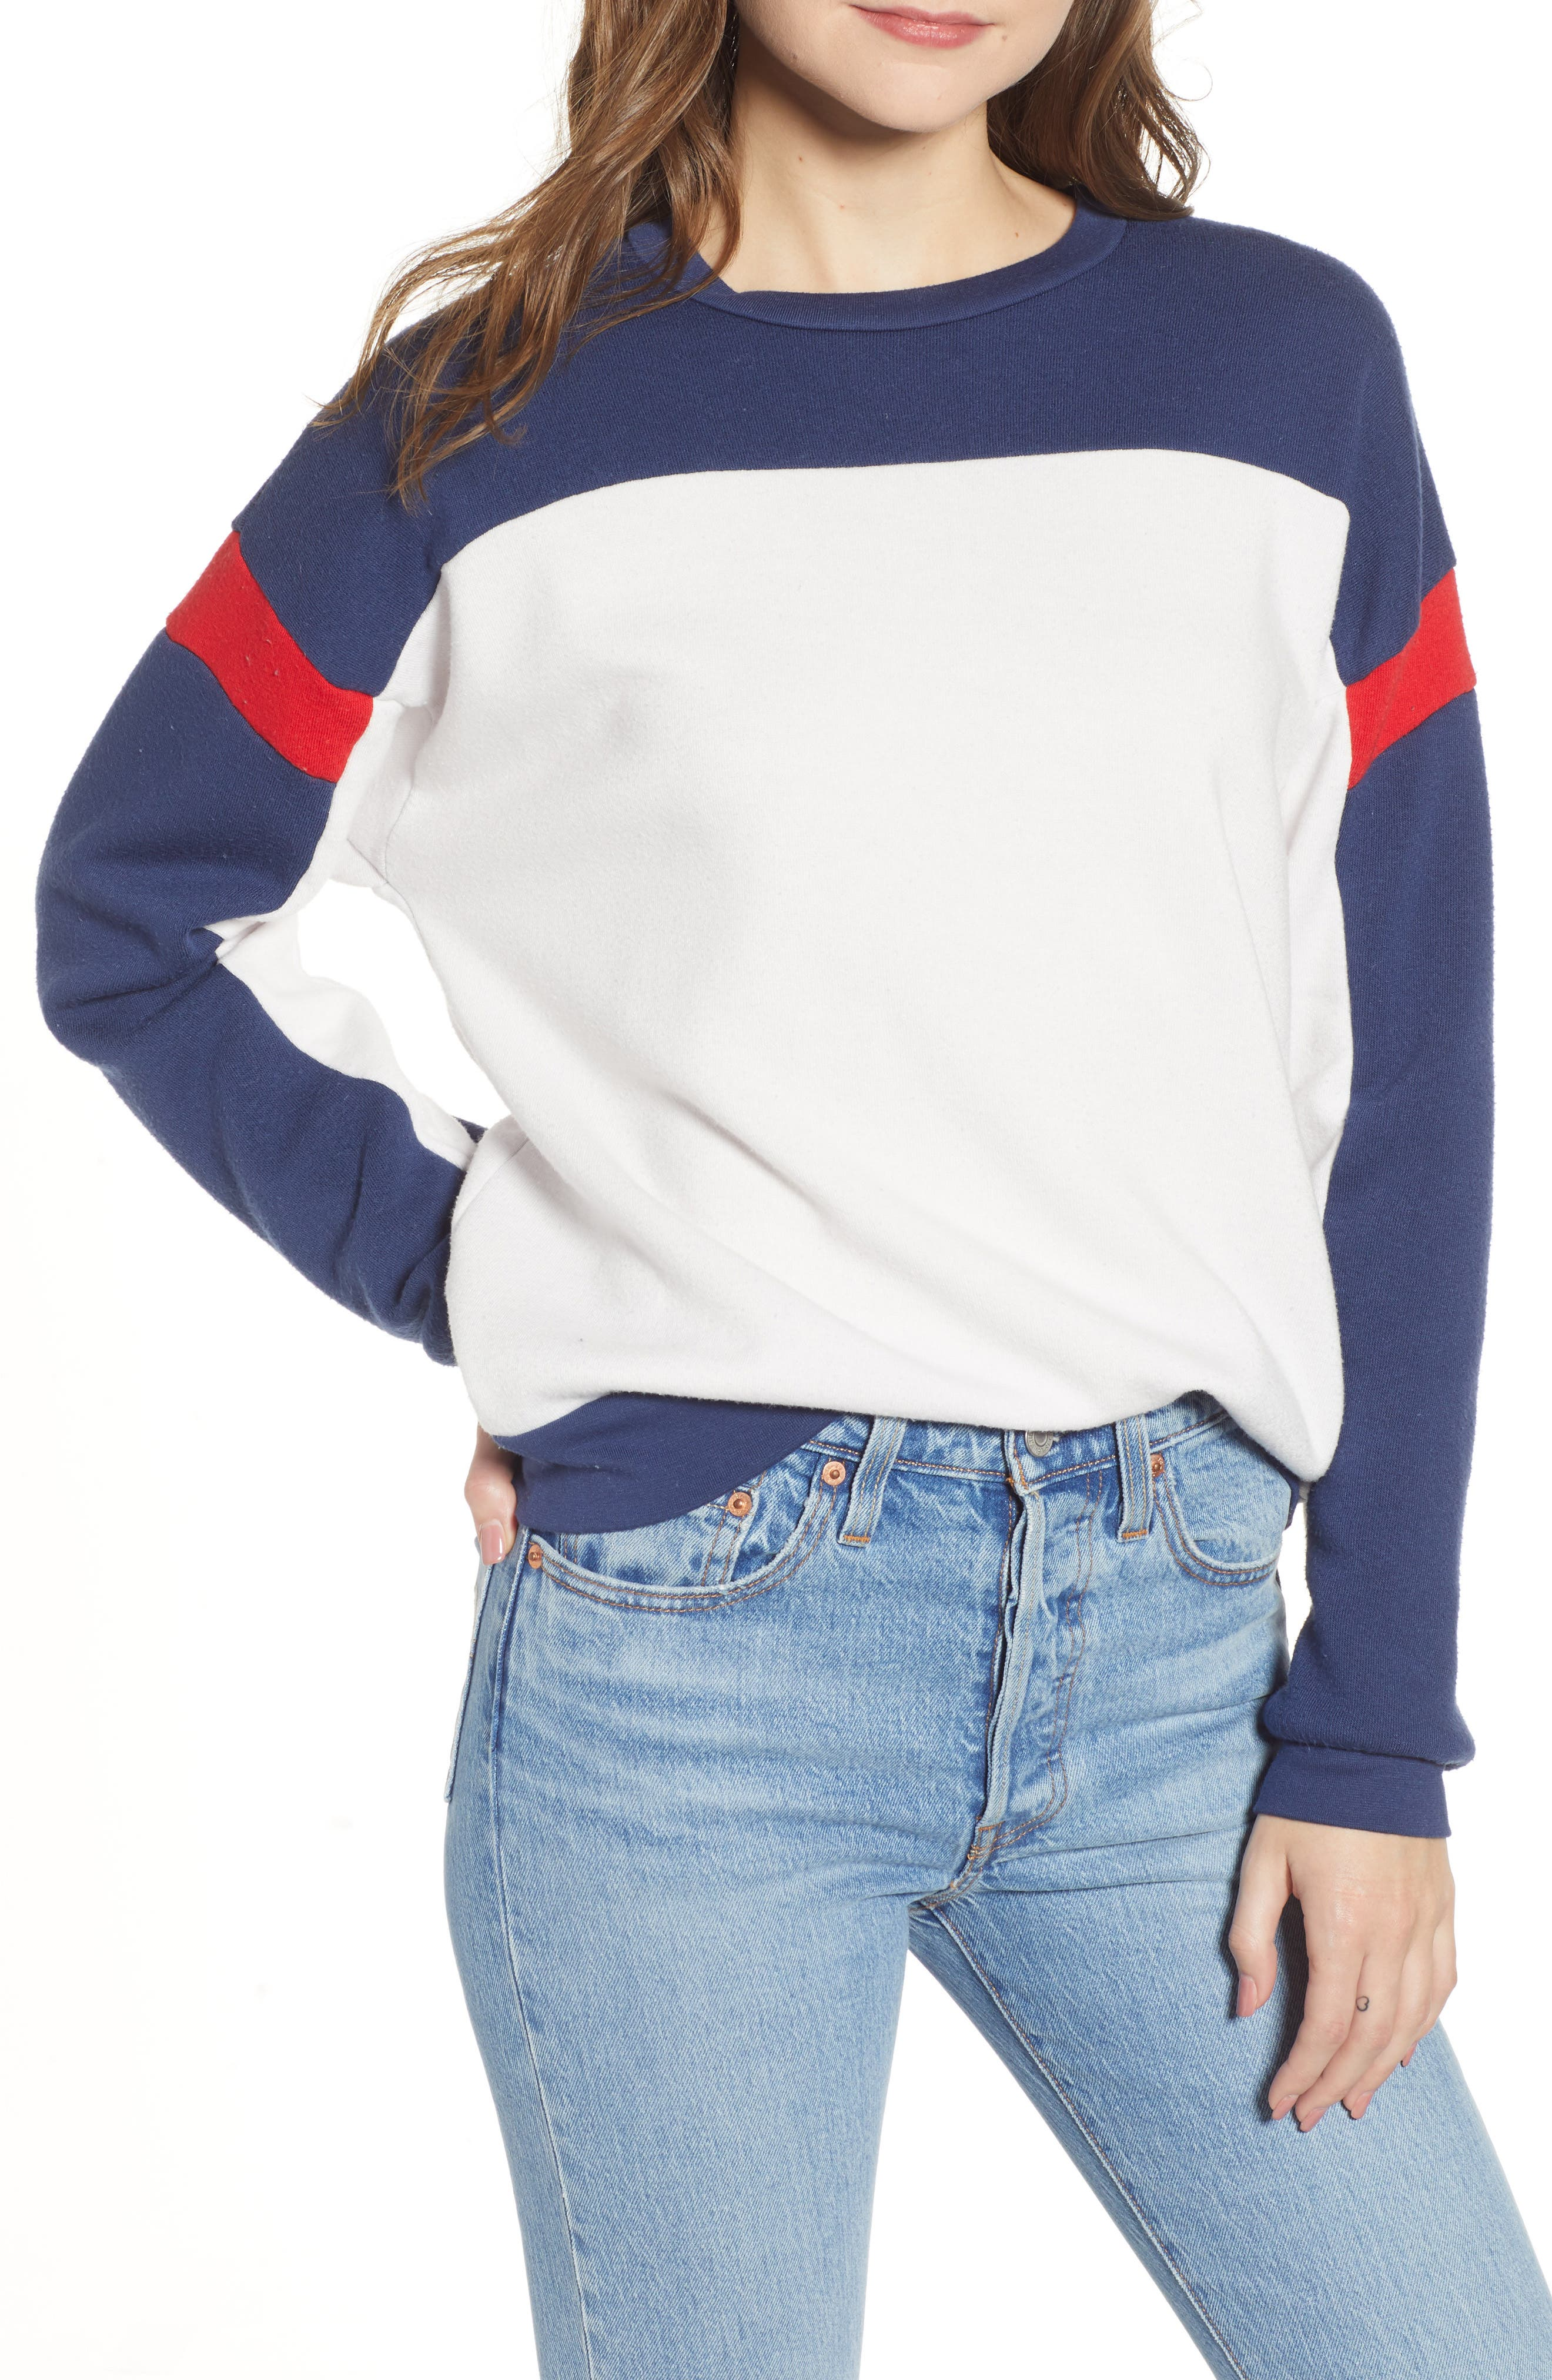 PROJECT SOCIAL T Rewind Colorblock Sweatshirt in Ivory/ Navy/ Red